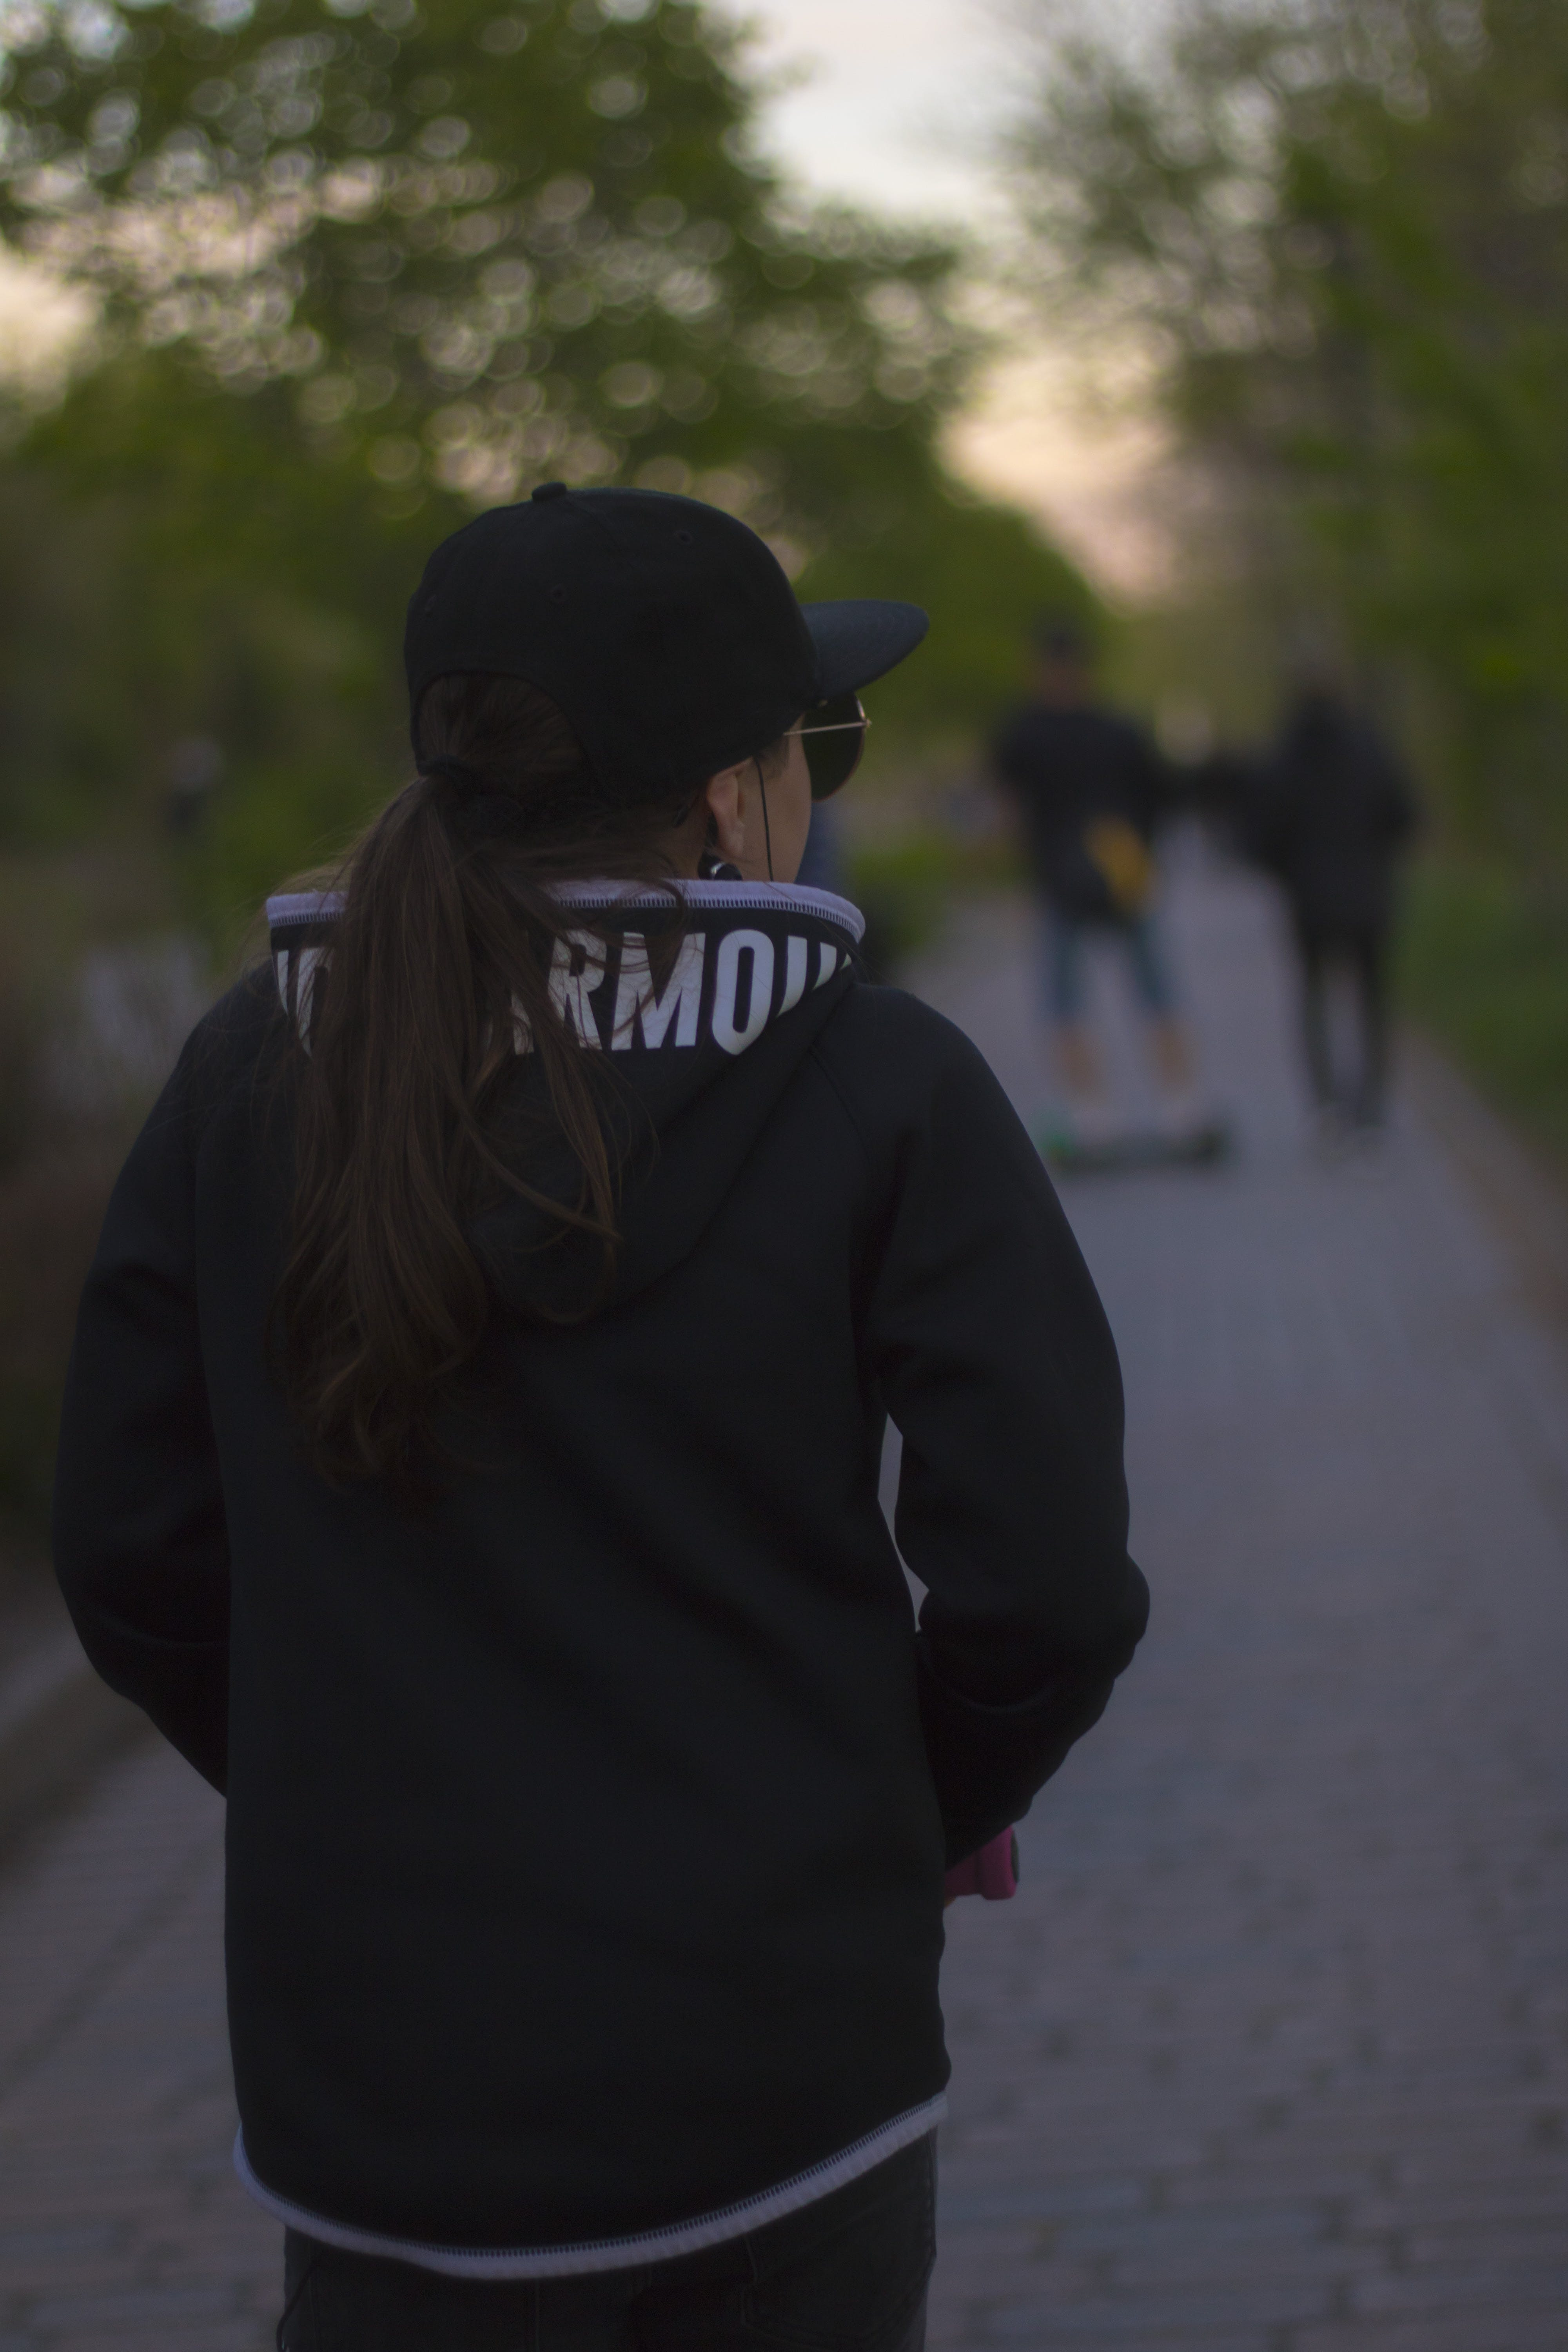 Shallow Depth of Field Photography of Person Walking Between Trees in Distant of Two People